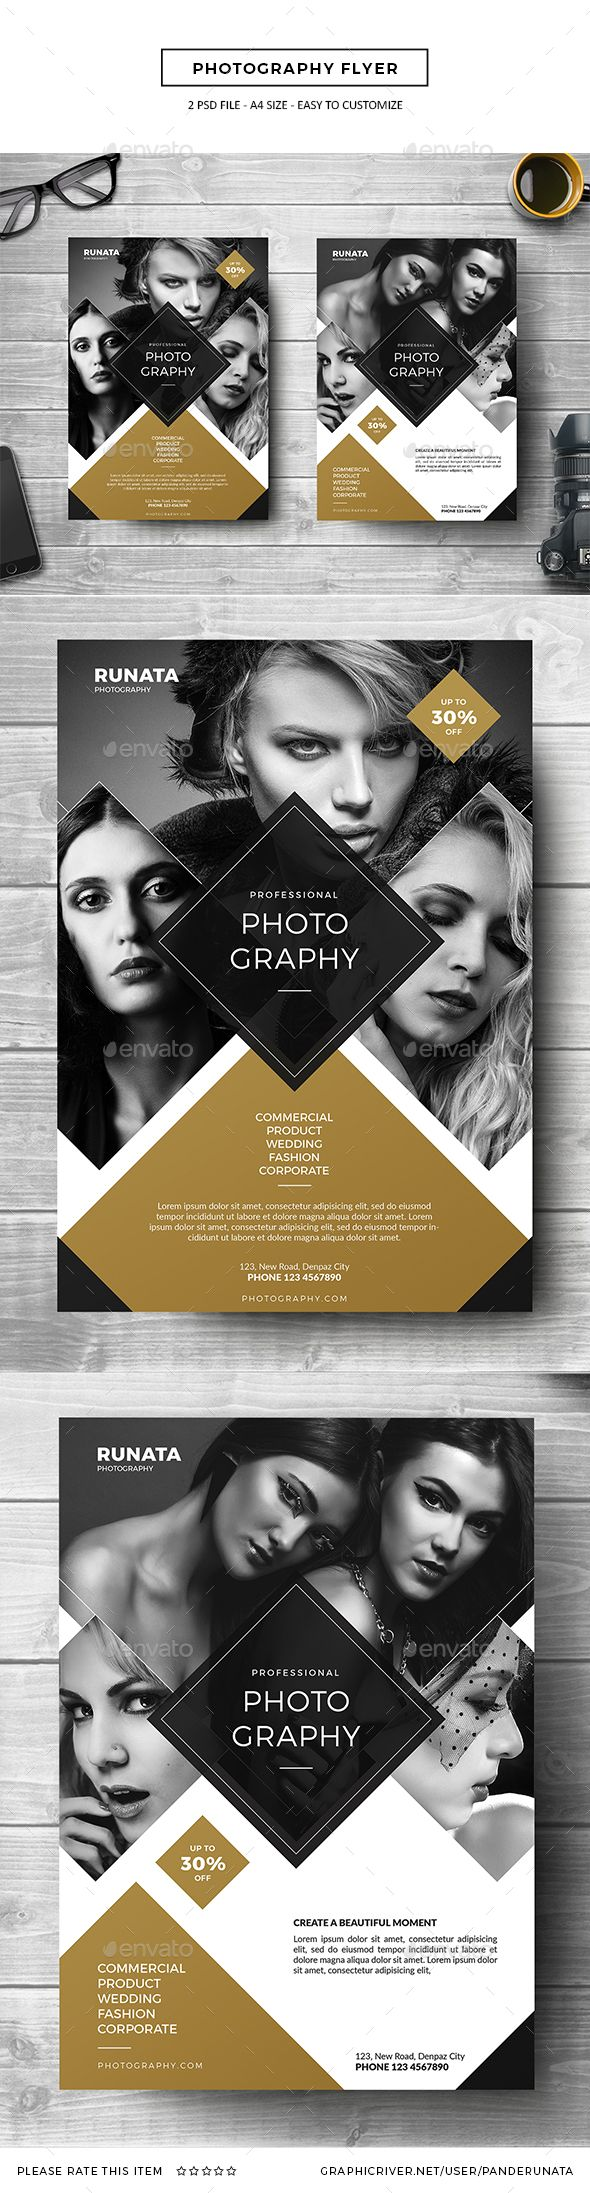 Photography Flyer - PSD Template • Only available here ➝ http://graphicriver.net/item/photography-flyer/16819795?ref=pxcr